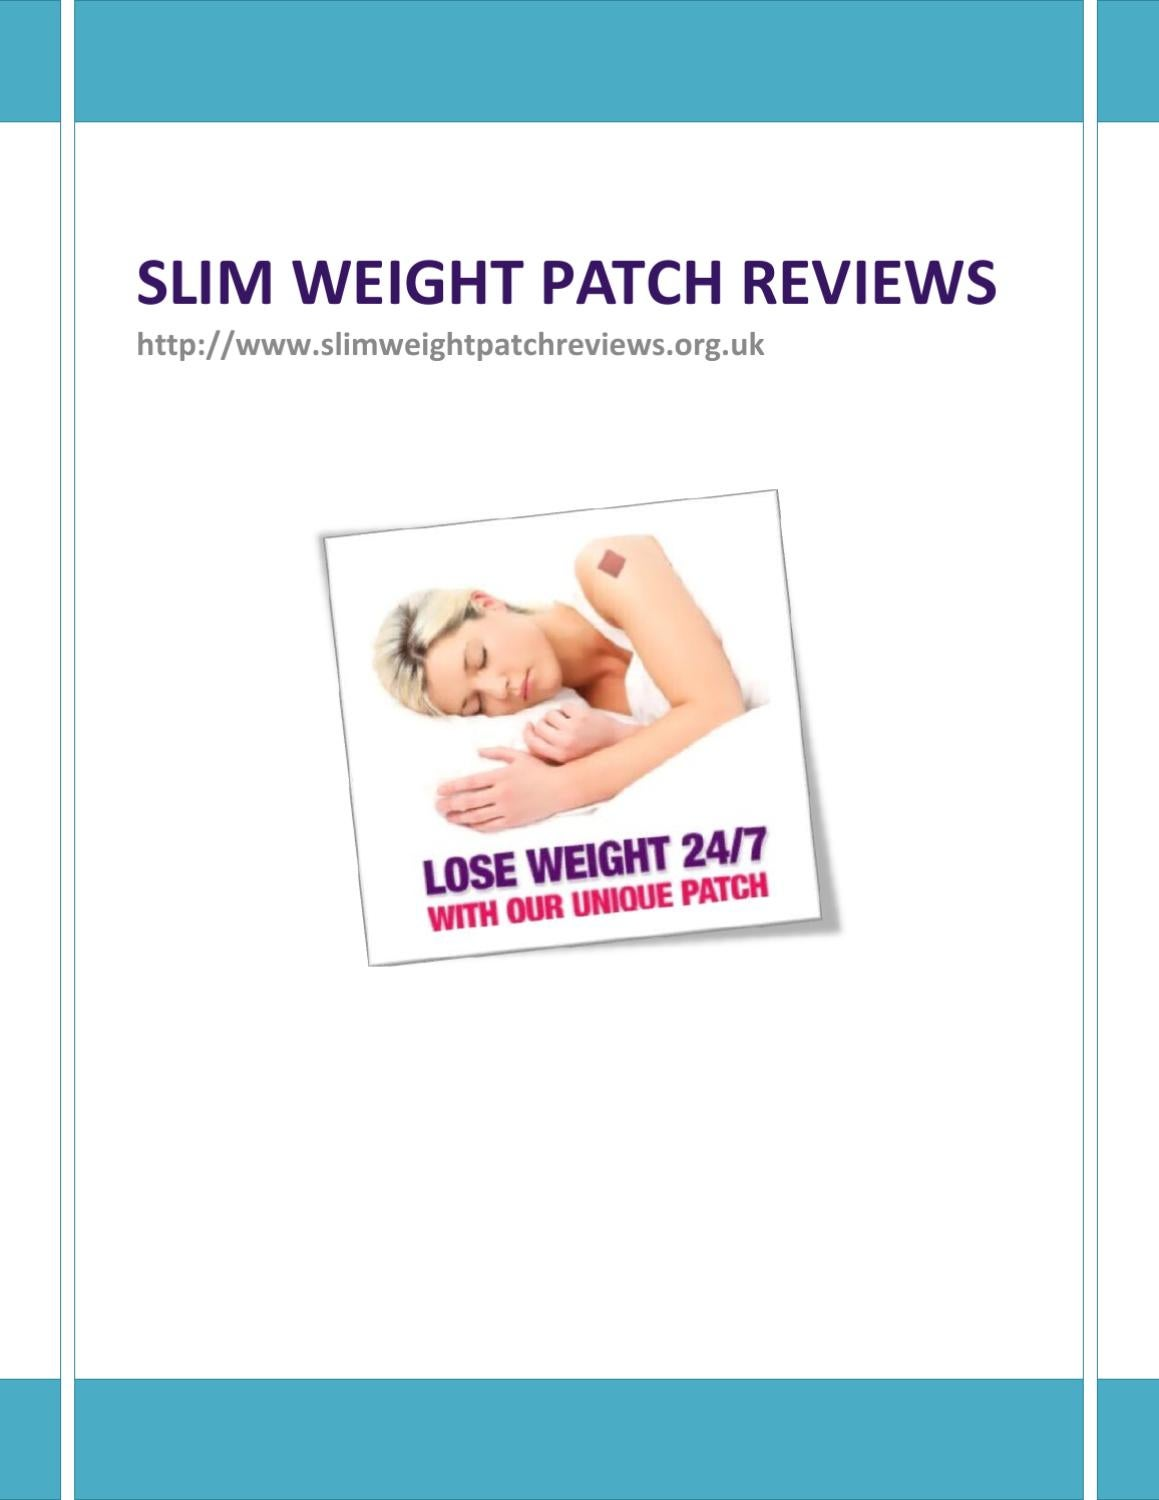 Slim Weight Patch Review By William Pablow Issuu